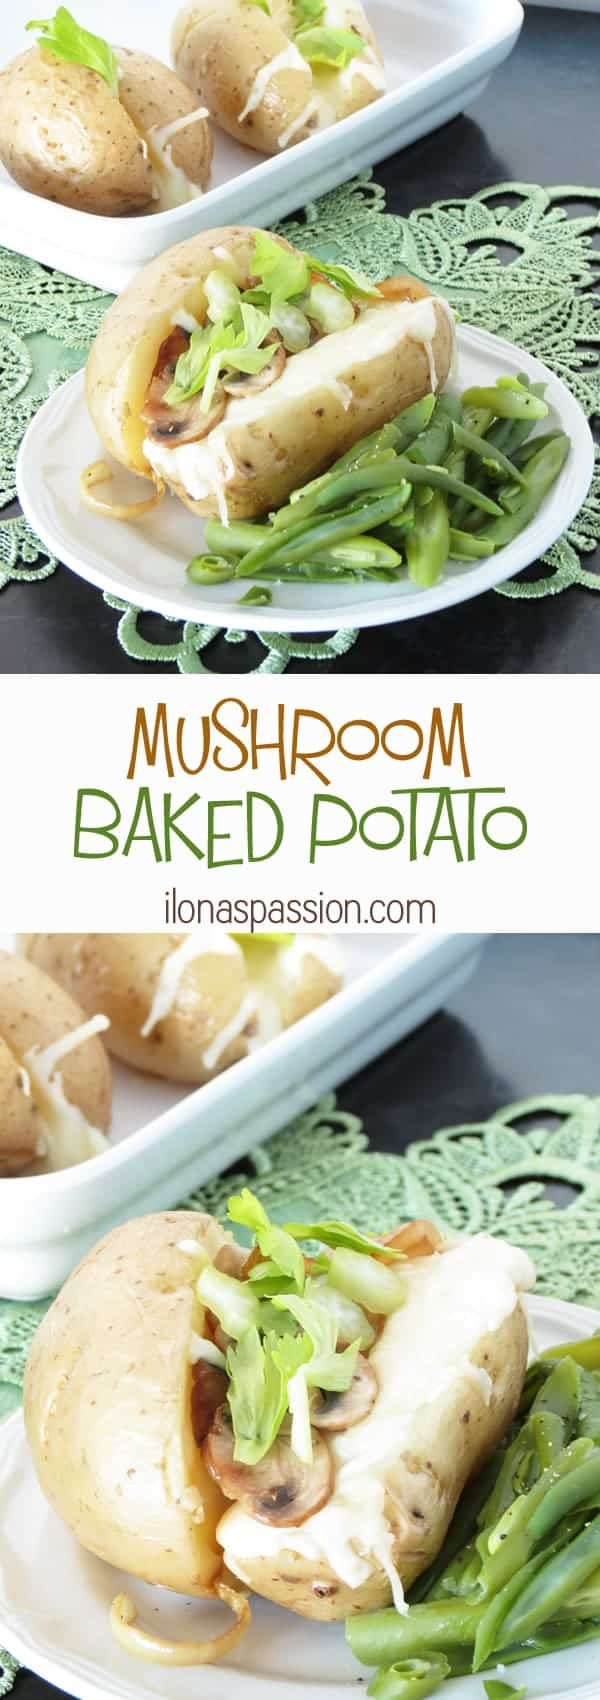 Easy Mushroom Baked Potato by ilonaspassion.com